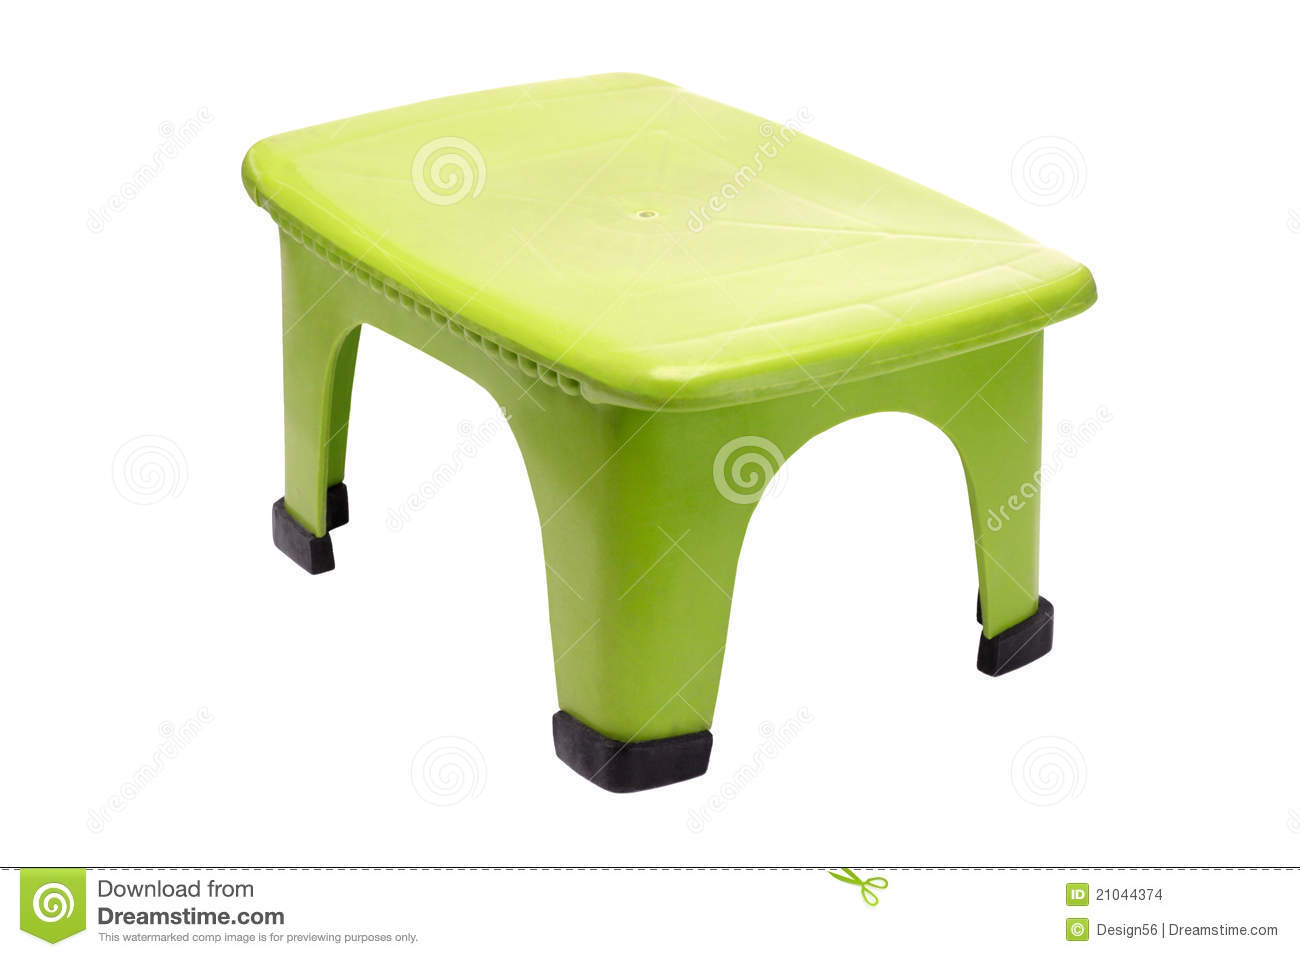 tabouret en plastique vert photo stock image du simple 21044374. Black Bedroom Furniture Sets. Home Design Ideas